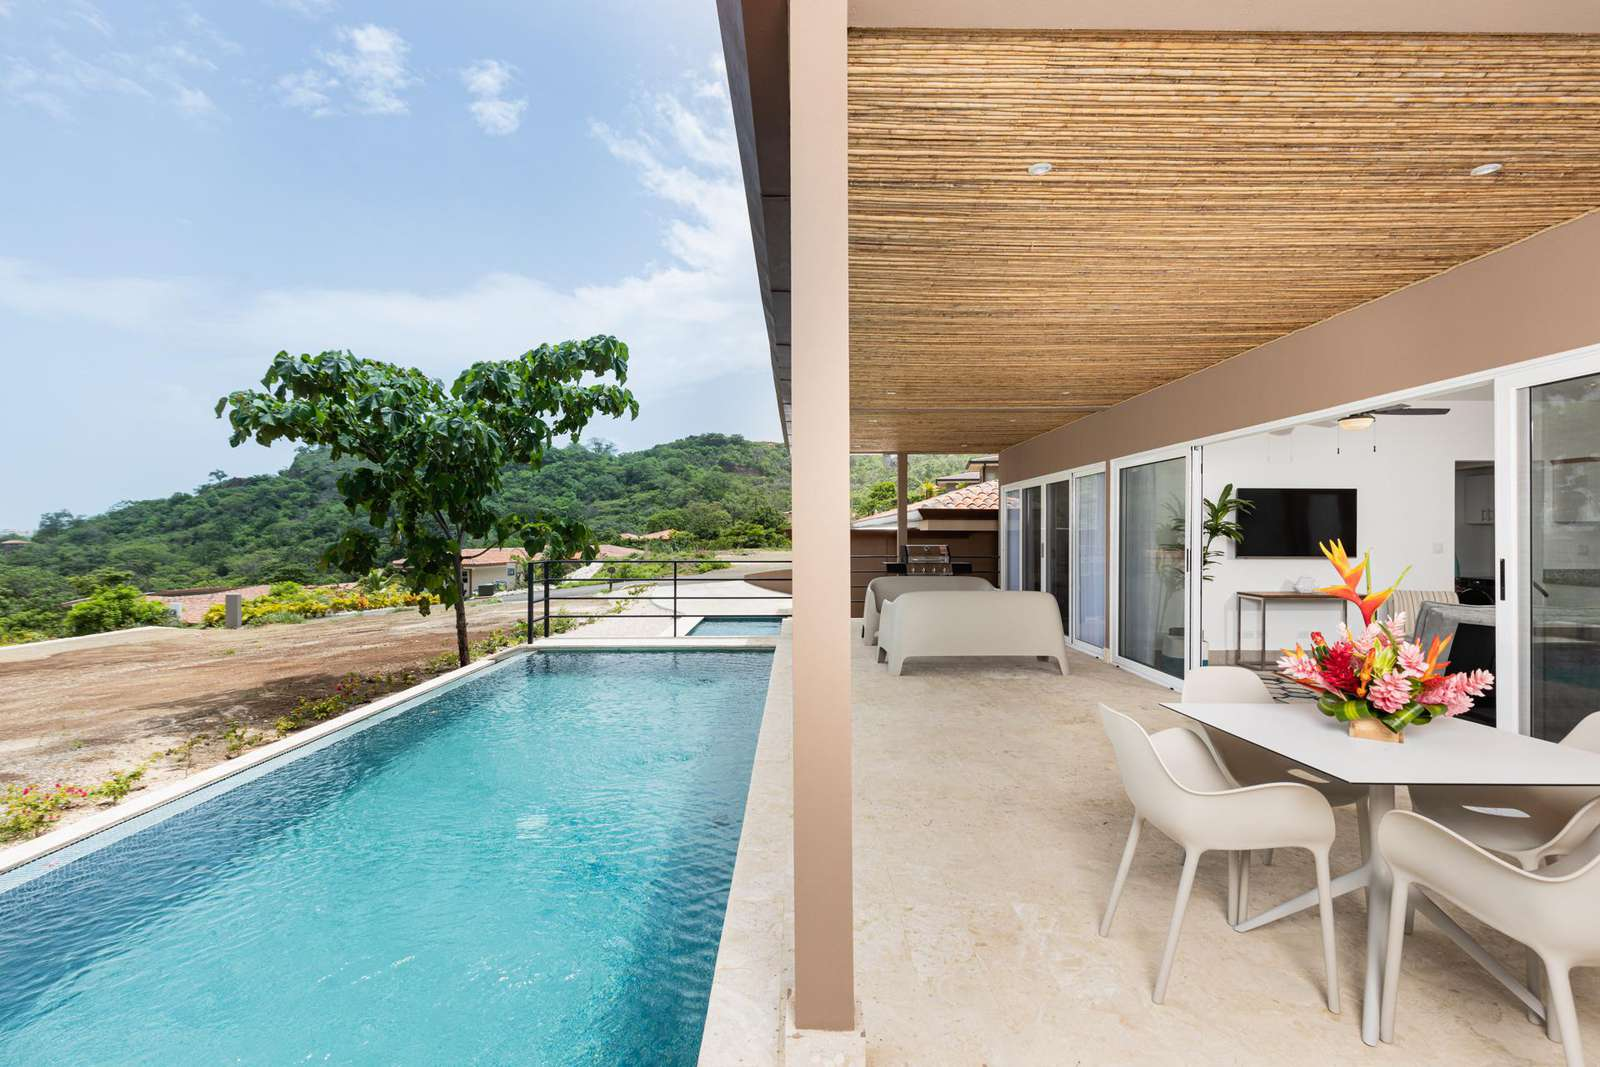 Private pool, dining area, BBQ